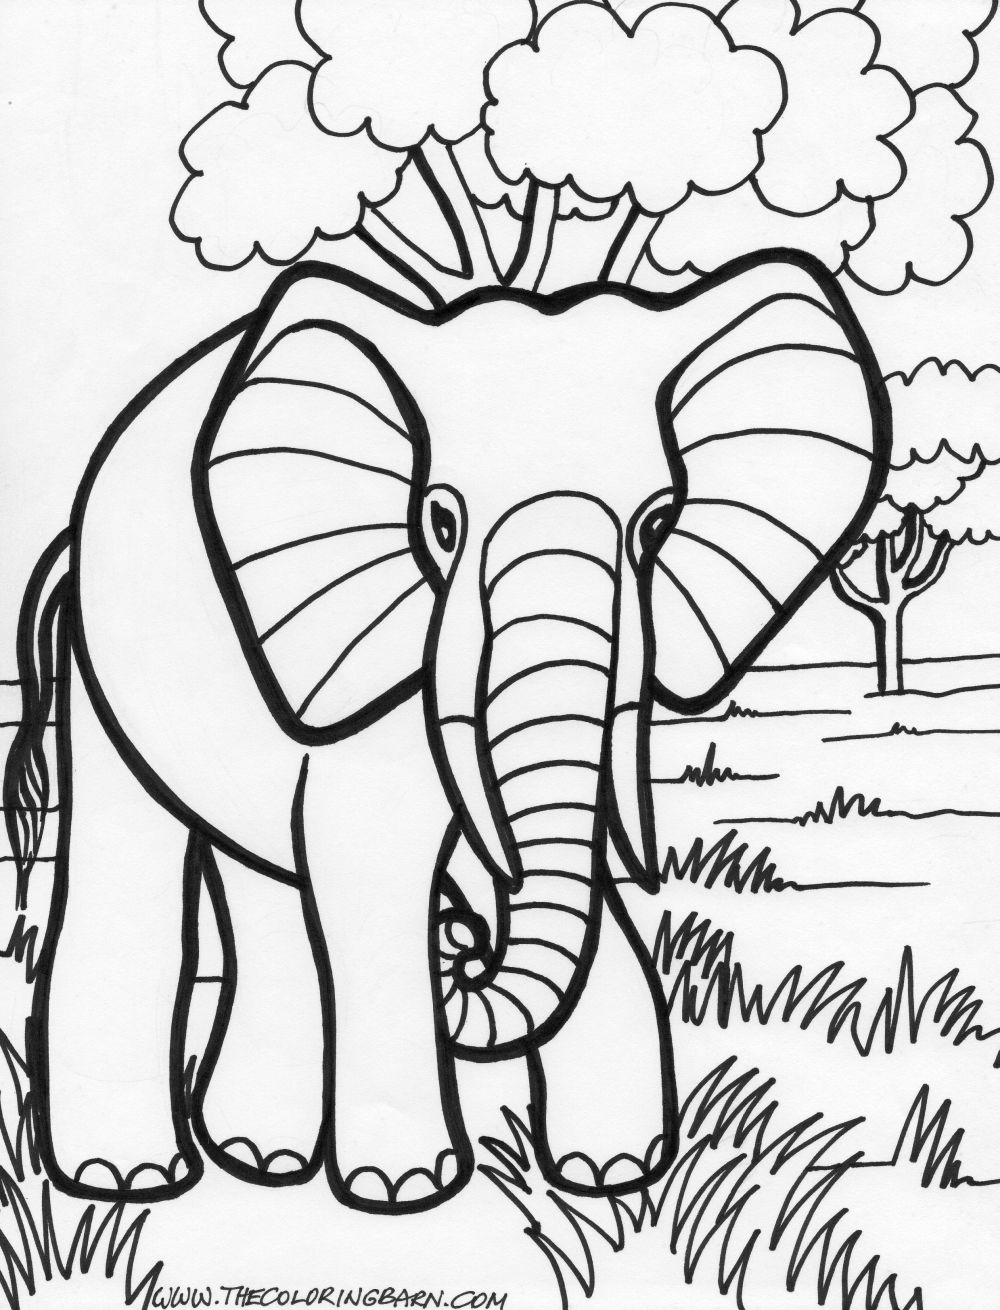 coloring book elephant images baby elephant coloring pages to download and print for free coloring elephant book images